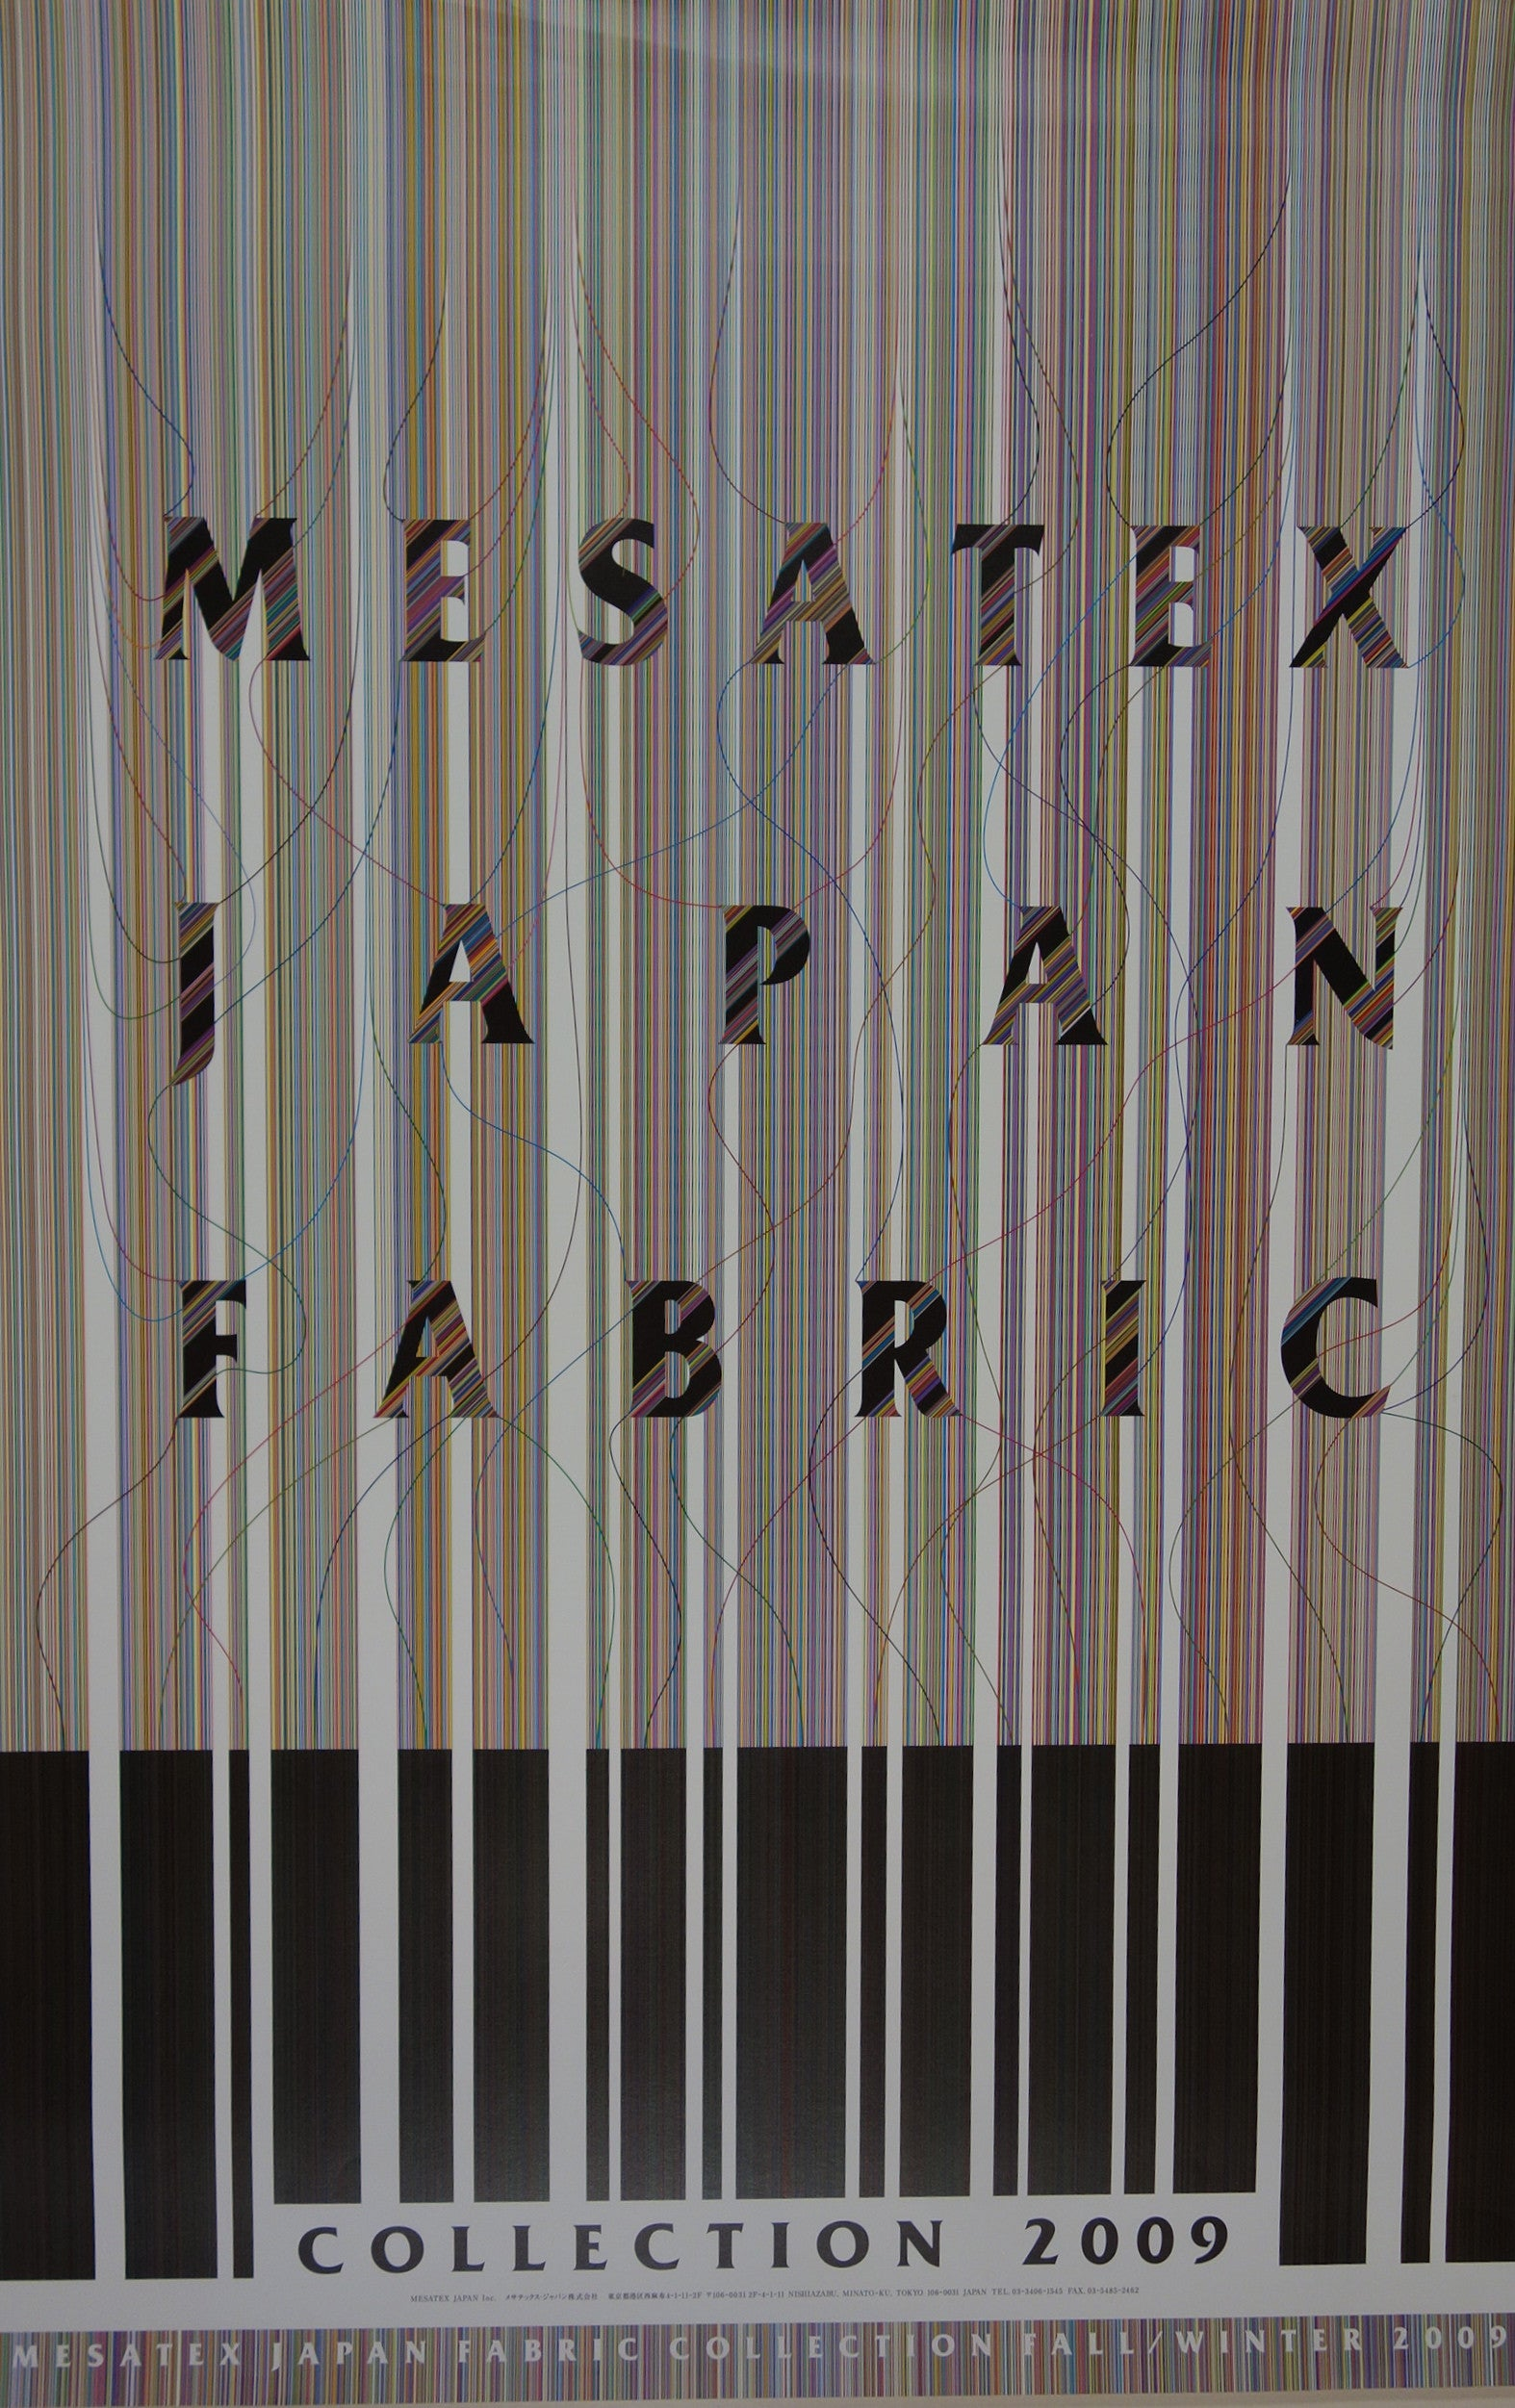 Mesatex Japan Fabric